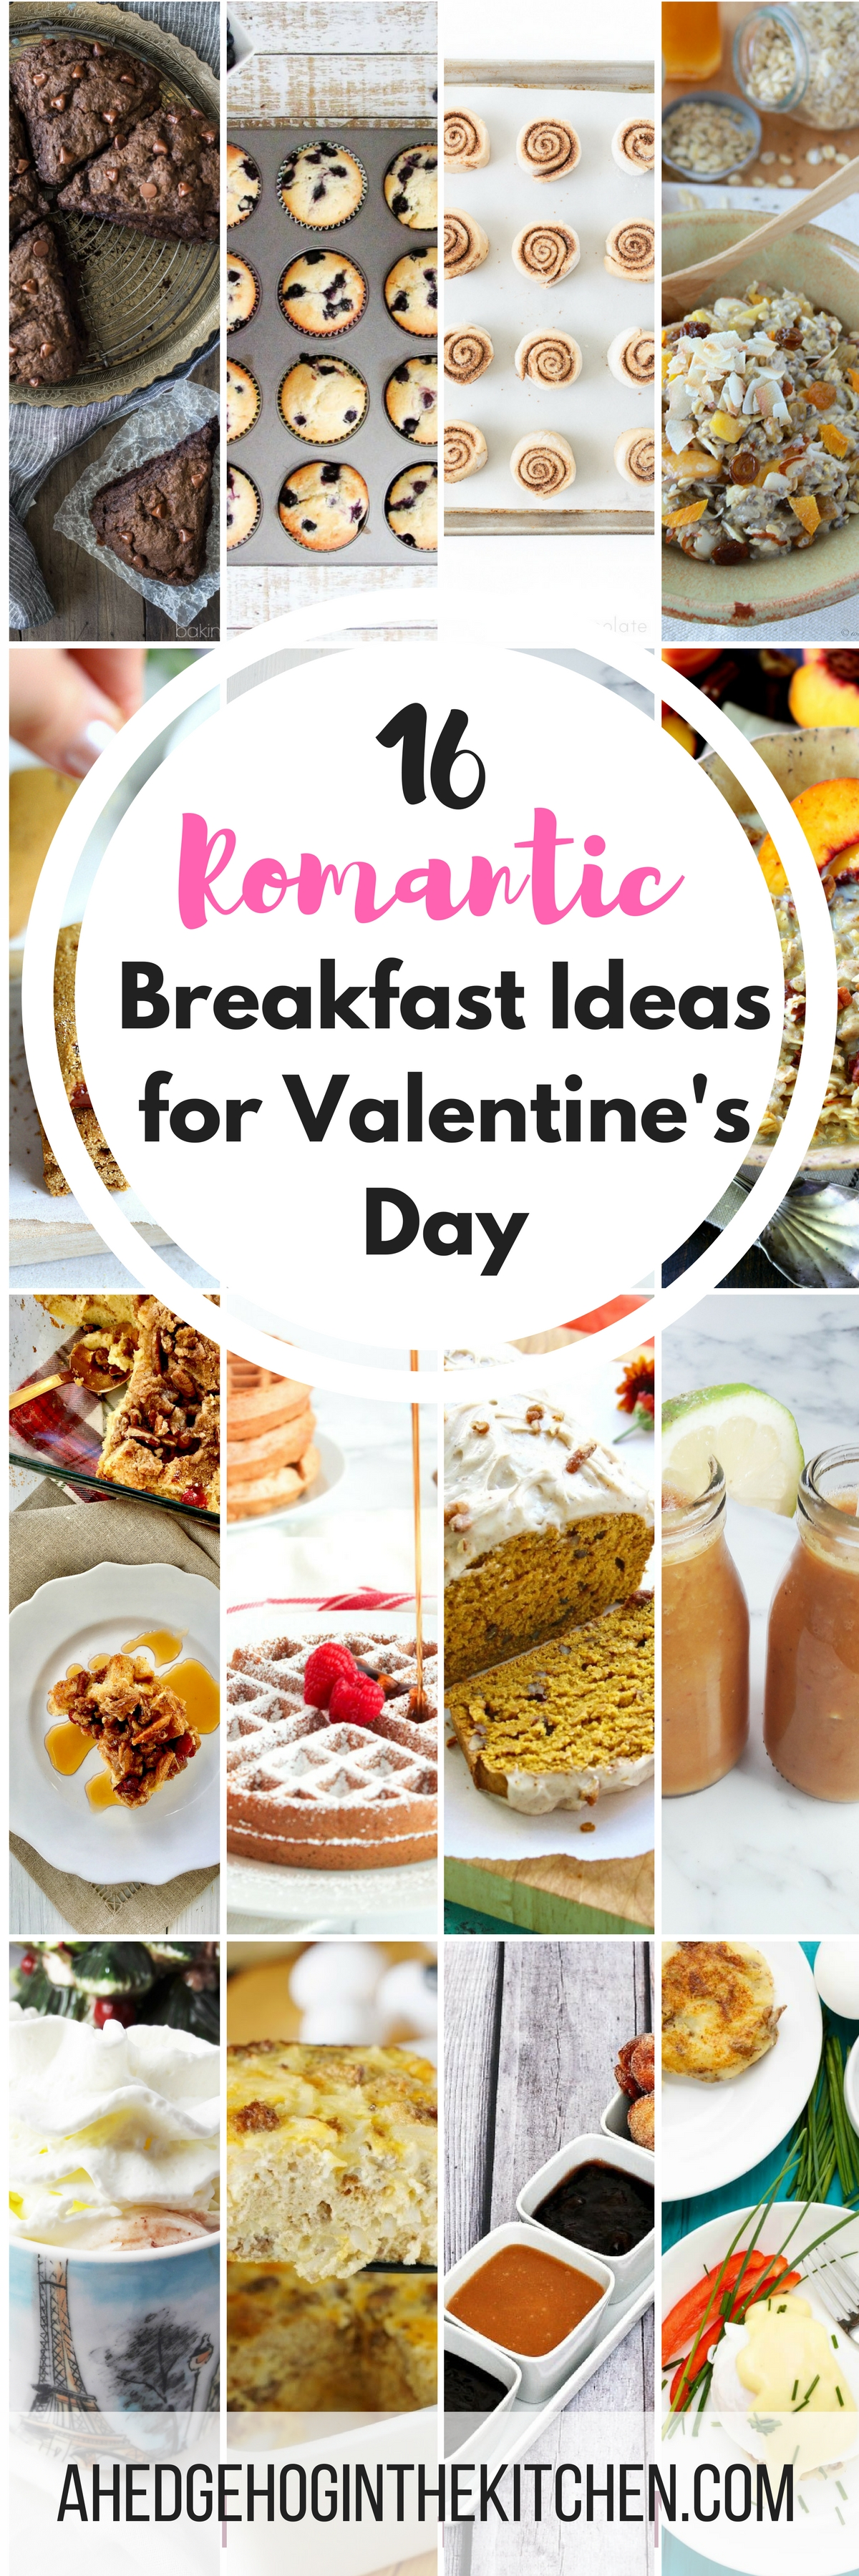 16 romantic breakfast ideas for valentine's day (+ kitchenaid